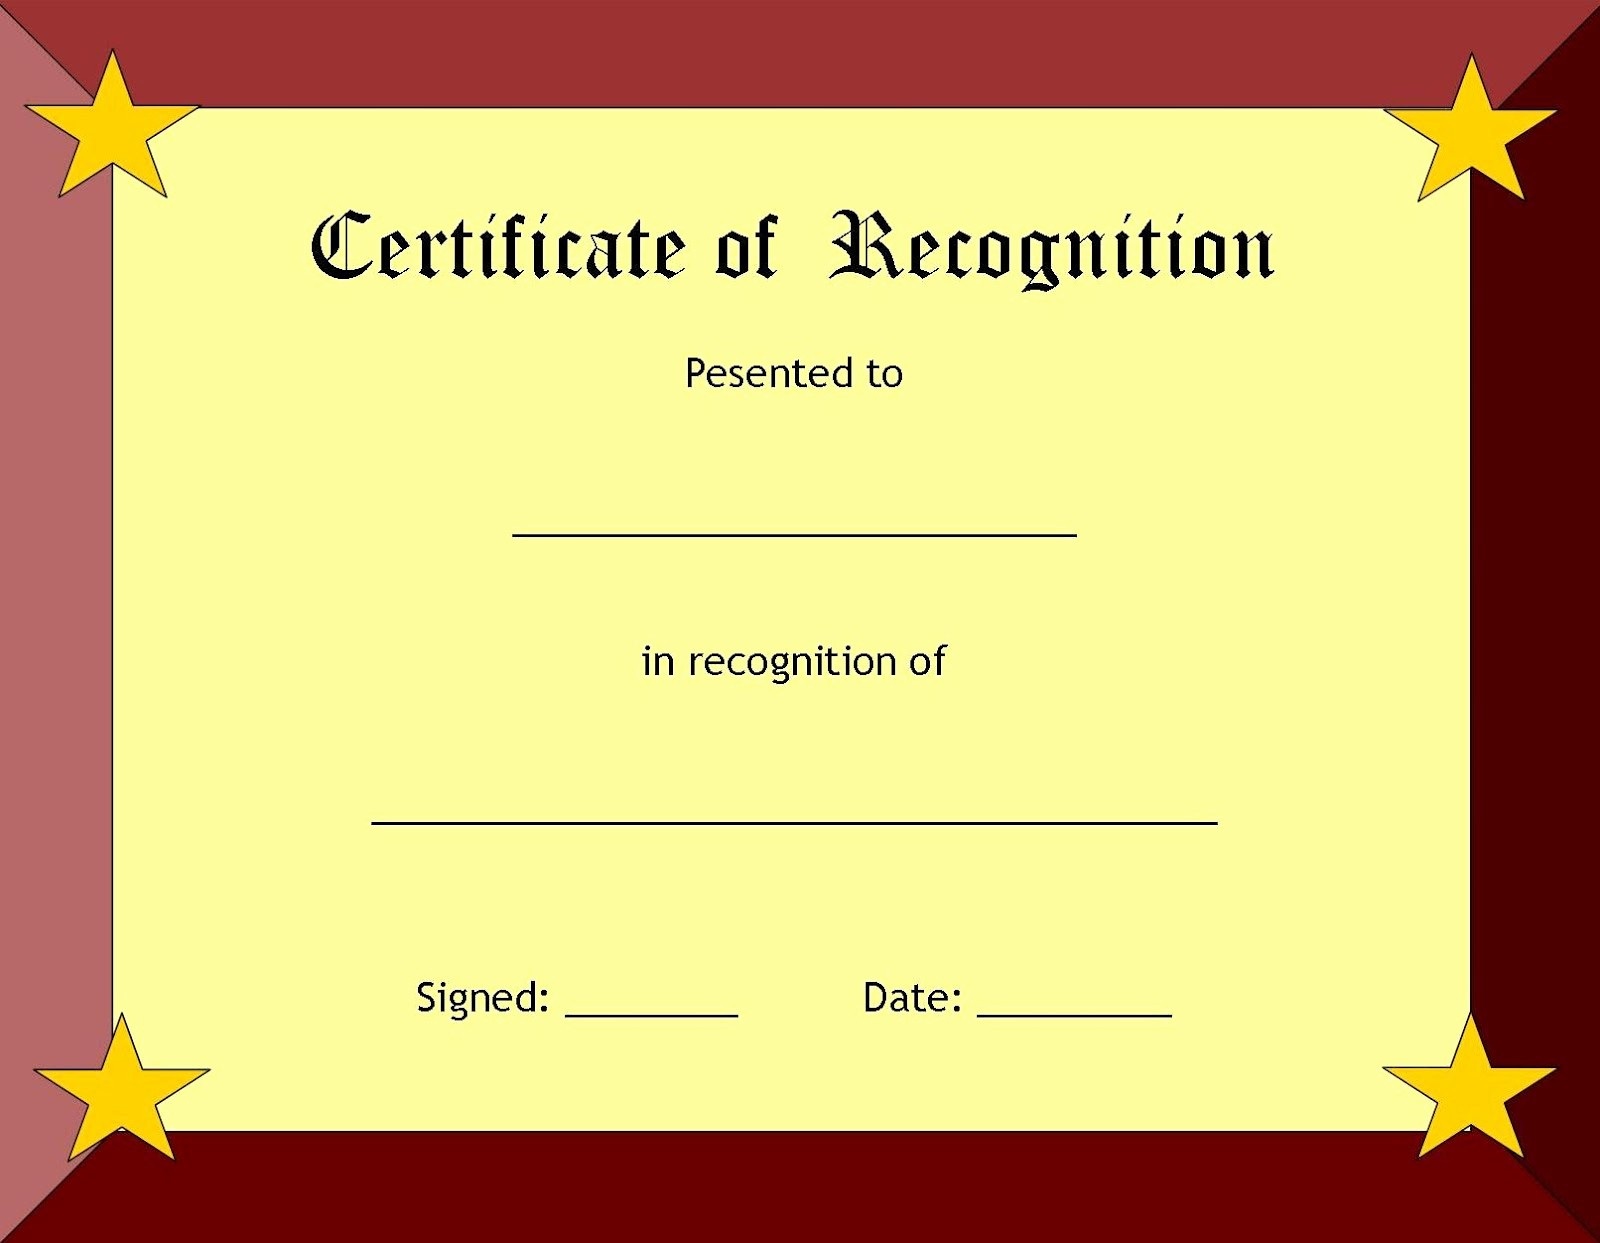 Recognition Certificate Templates Free Printable Fresh Certificate Templates without Borders